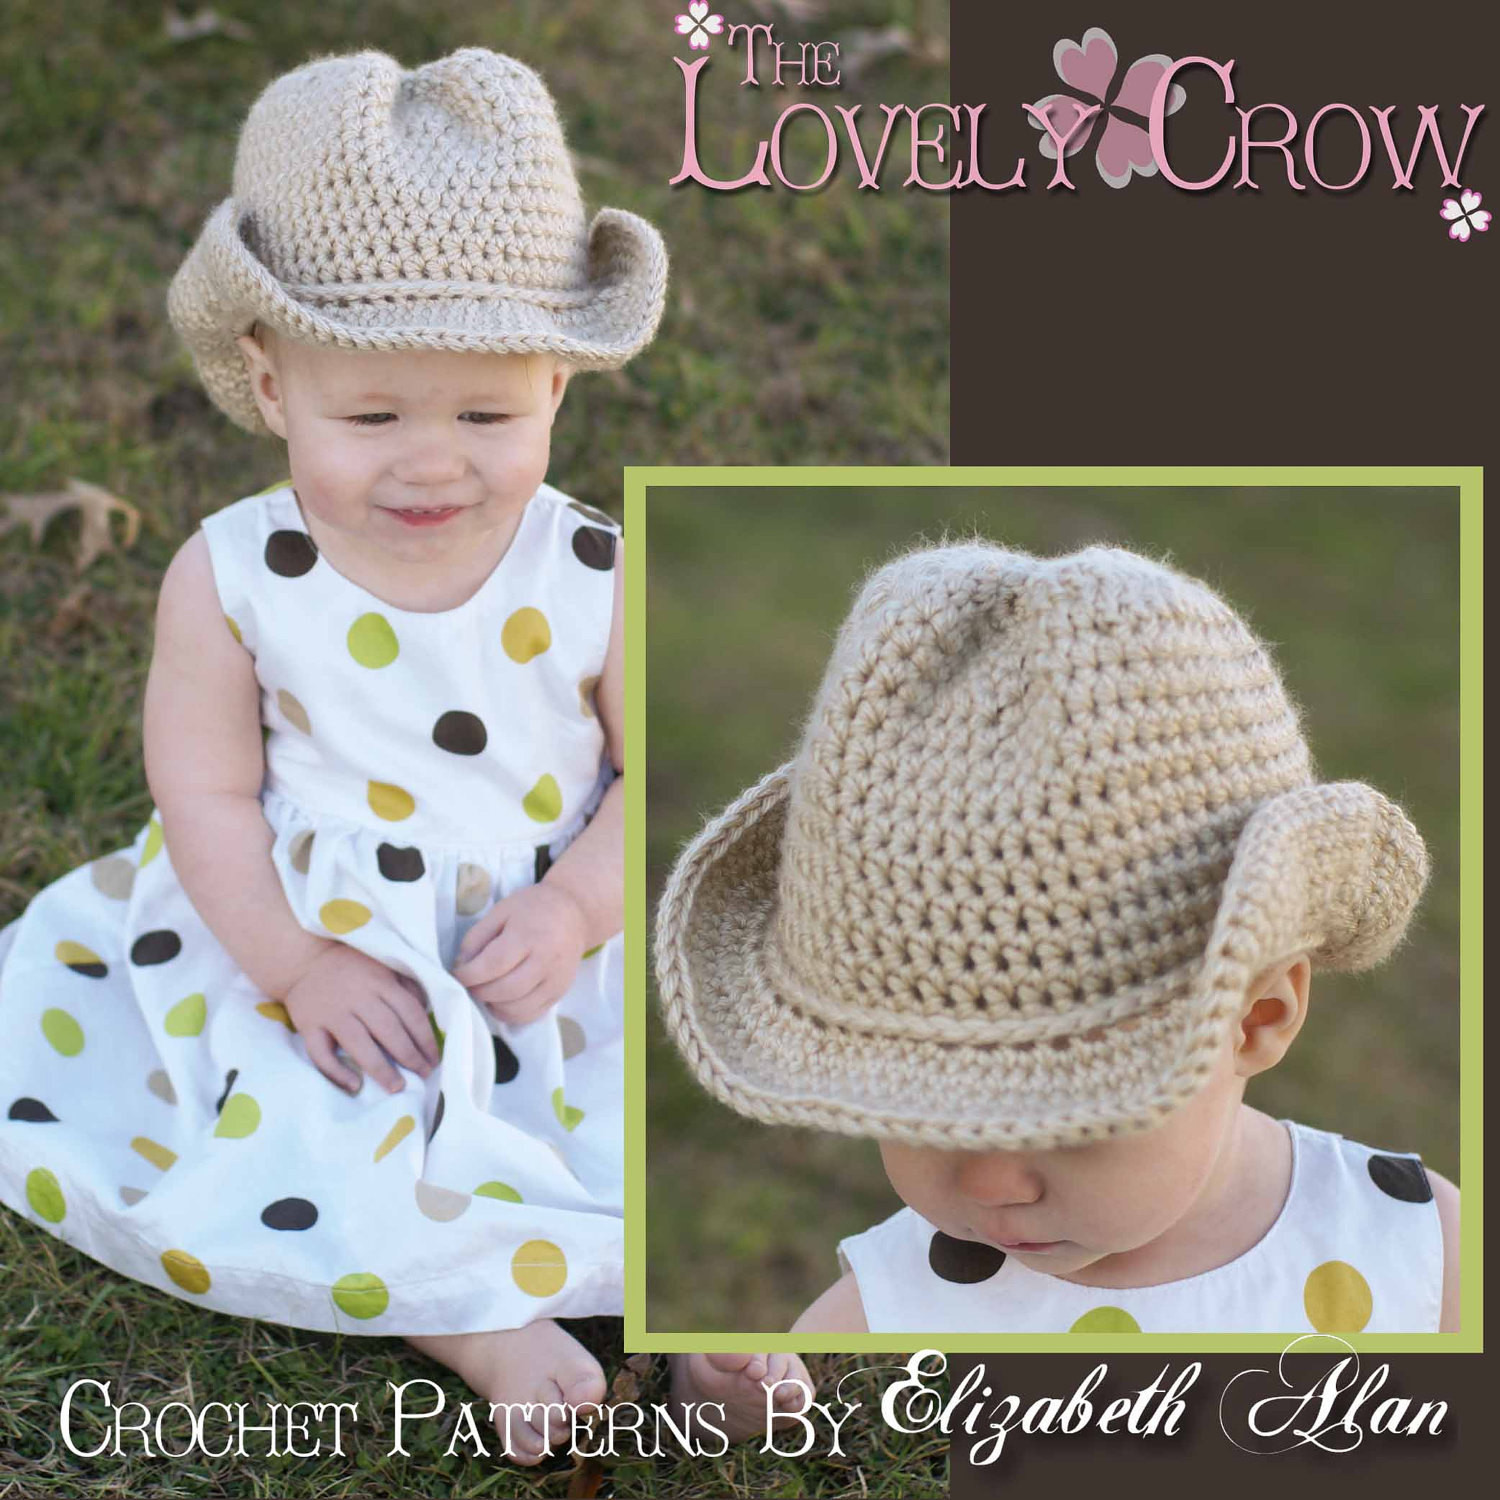 Crochet Baby Cowboy Hat and Boots Pattern Free Elegant Cowboy Hat Crochet Pattern Baby for Boot Scoot N Cowboy Of Brilliant 40 Ideas Crochet Baby Cowboy Hat and Boots Pattern Free